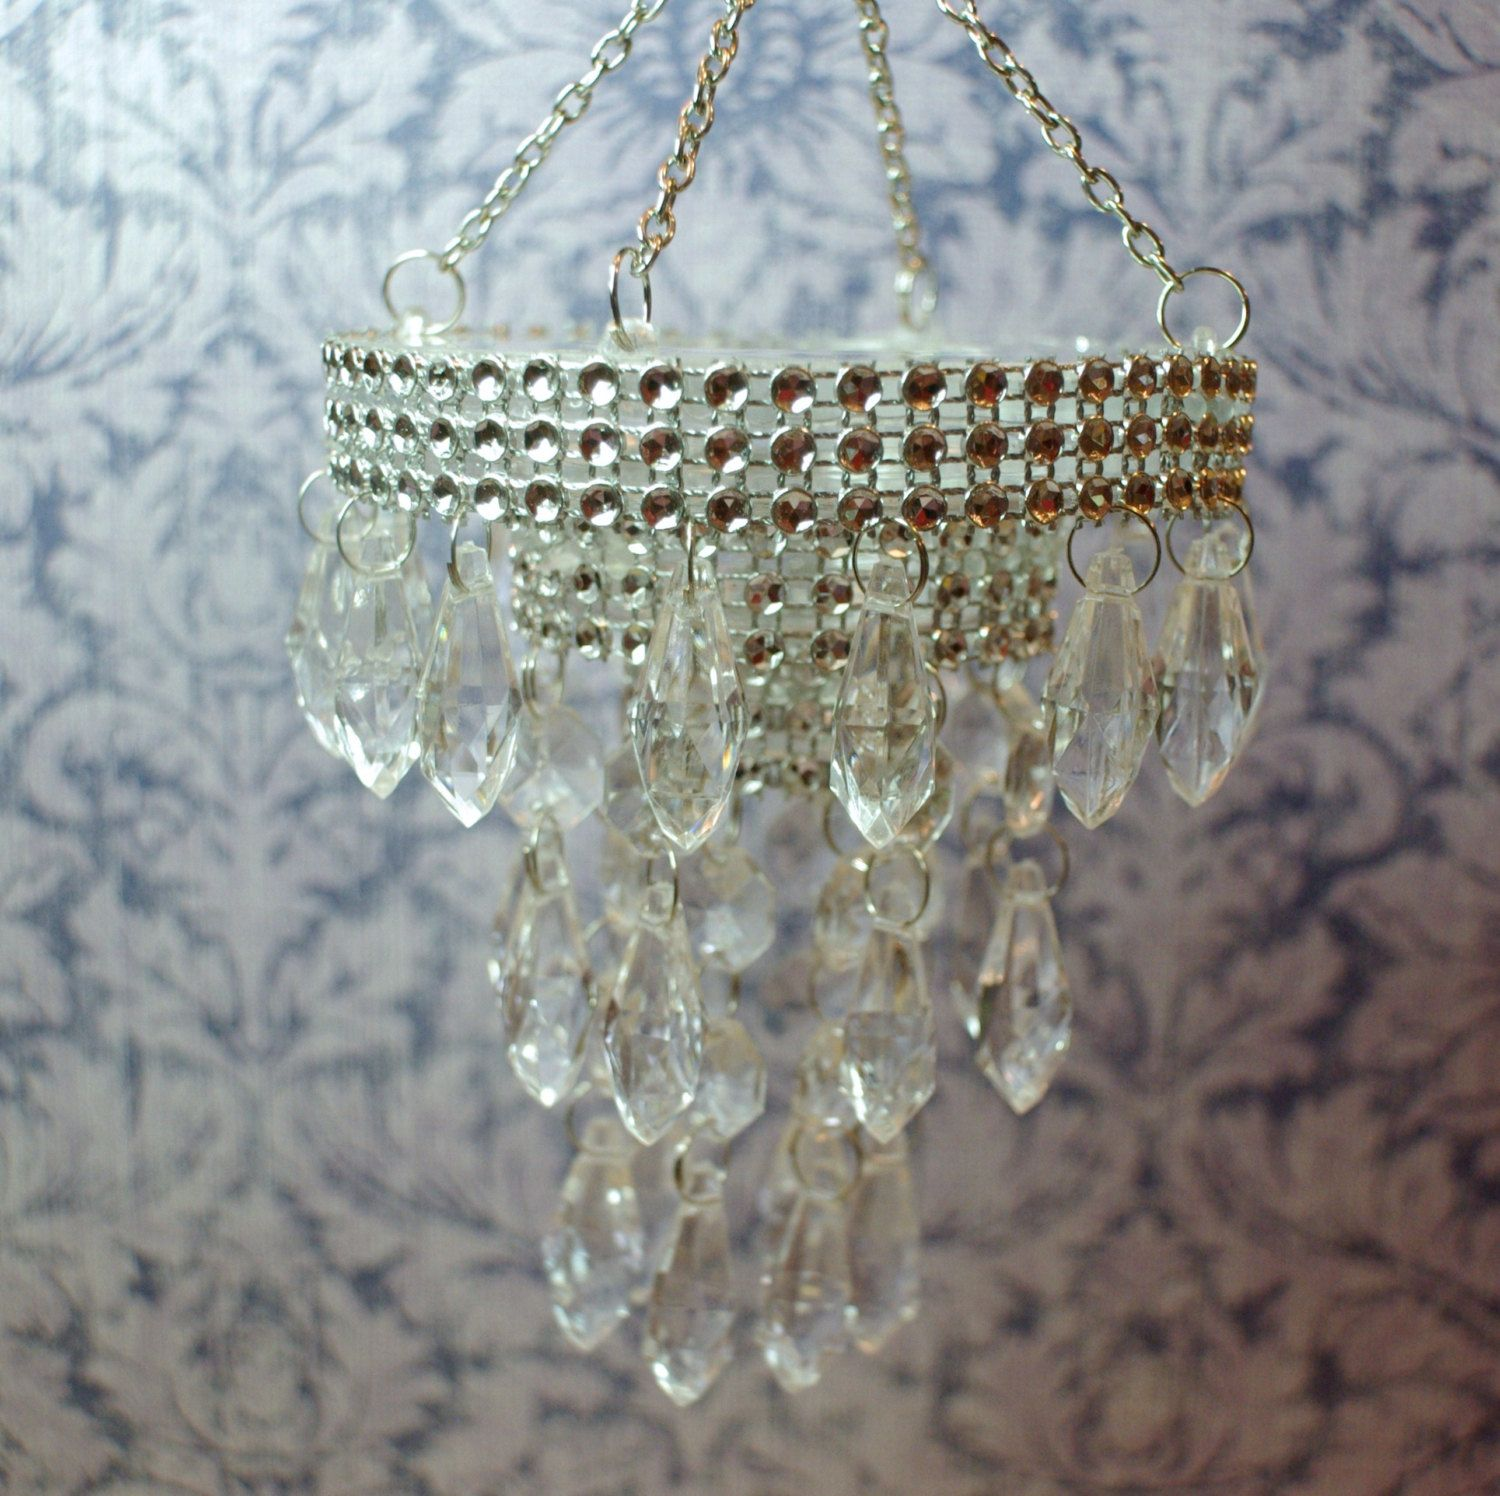 Dollhouse Chandelier Tutorial: Miniature+Dollhouse+Chandelier+by+KammysCreations+on+Etsy